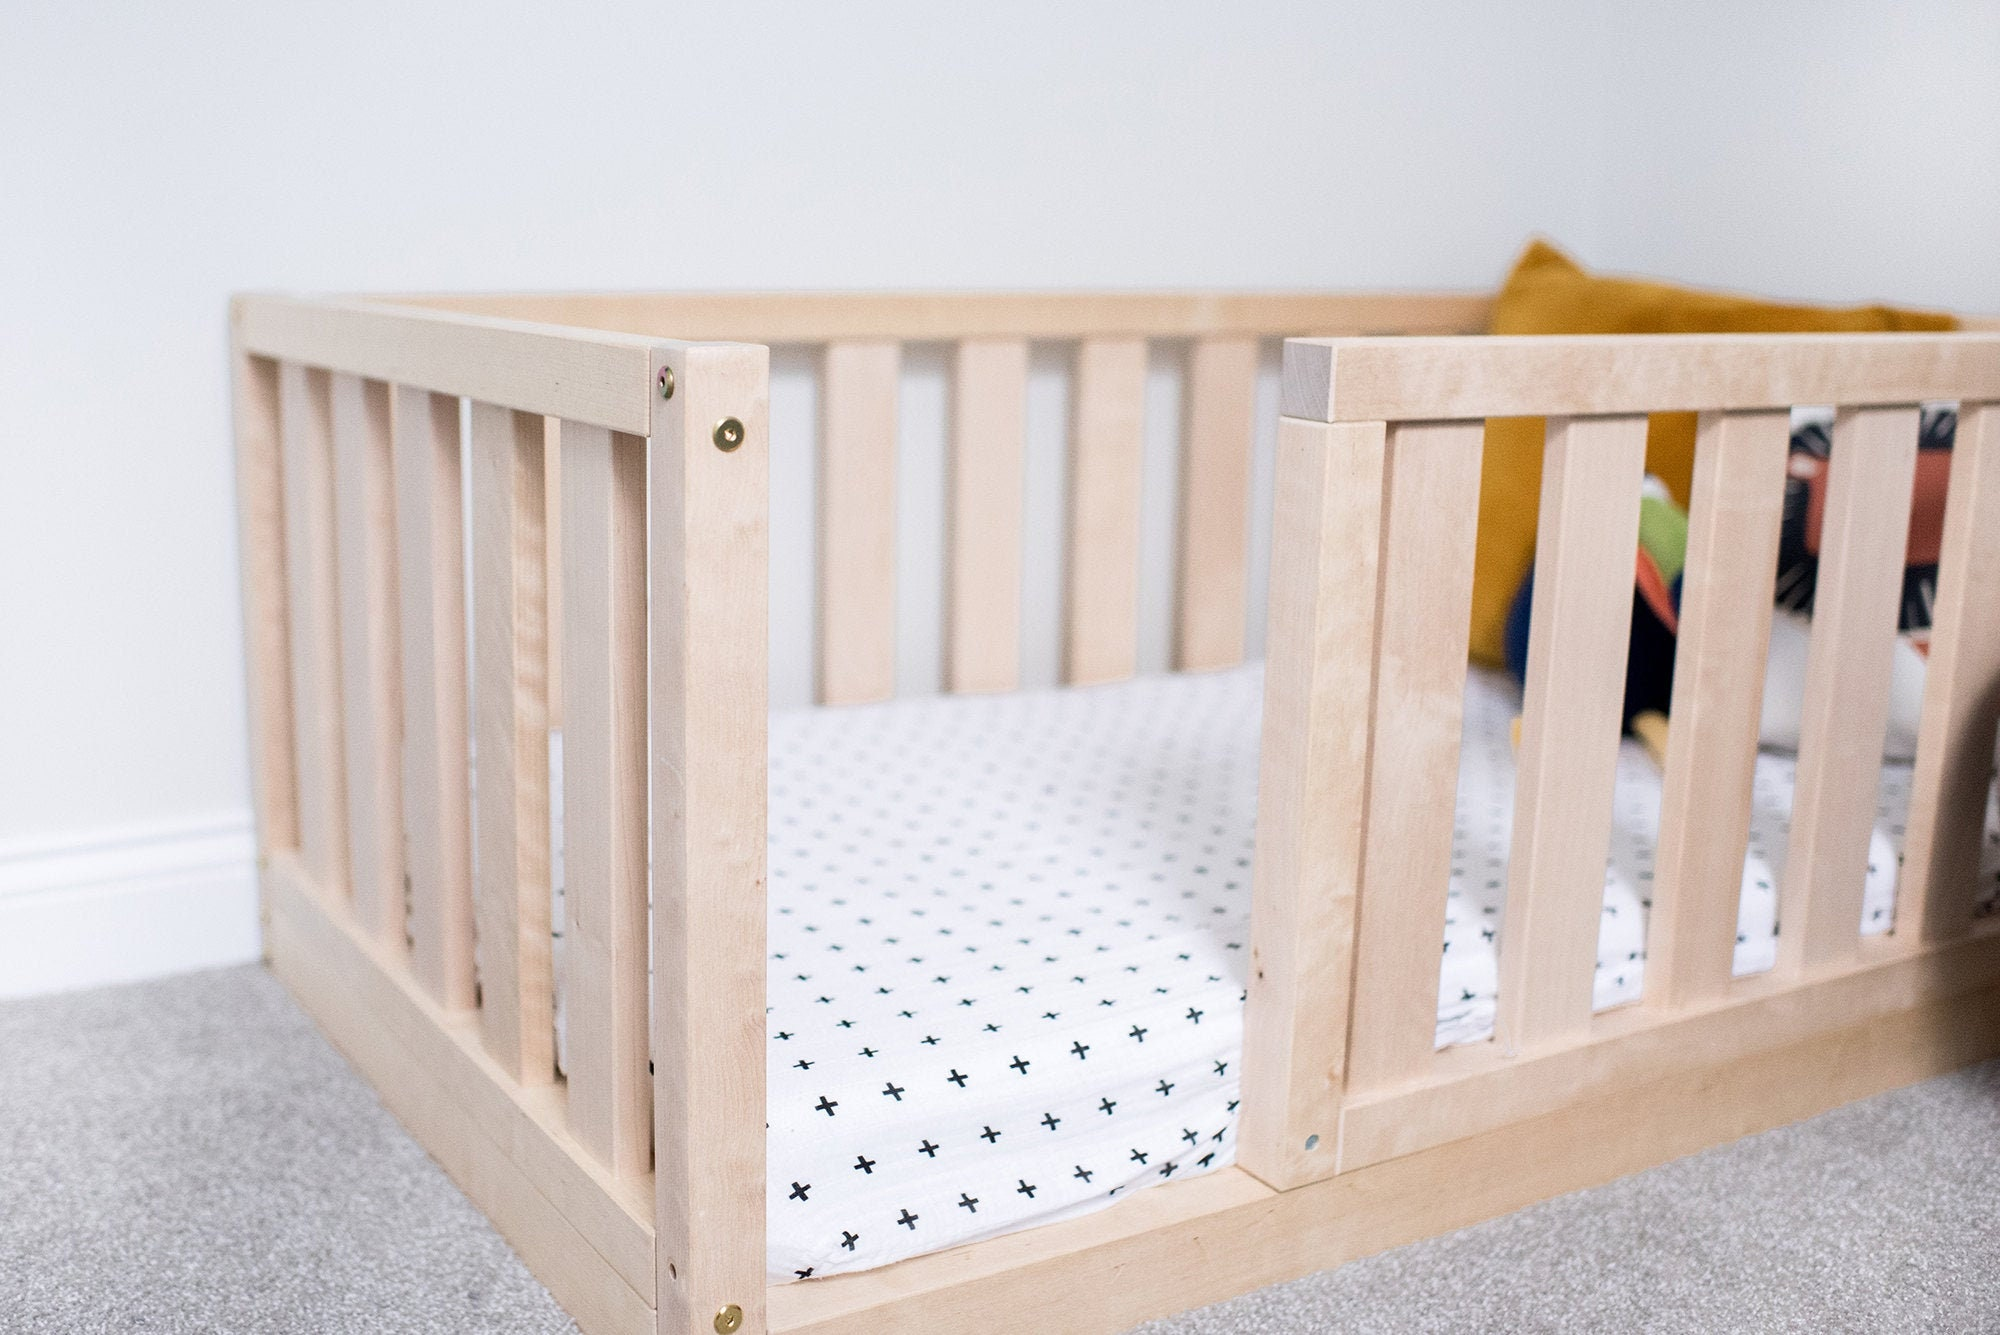 Picture of: Durable New Us Crib Size Toddler Bed Play Bed Frame Children Bed Bunk Bed Wood Floor Bed Wooden Bed Wood Montessori Bed Gift Bed Frame